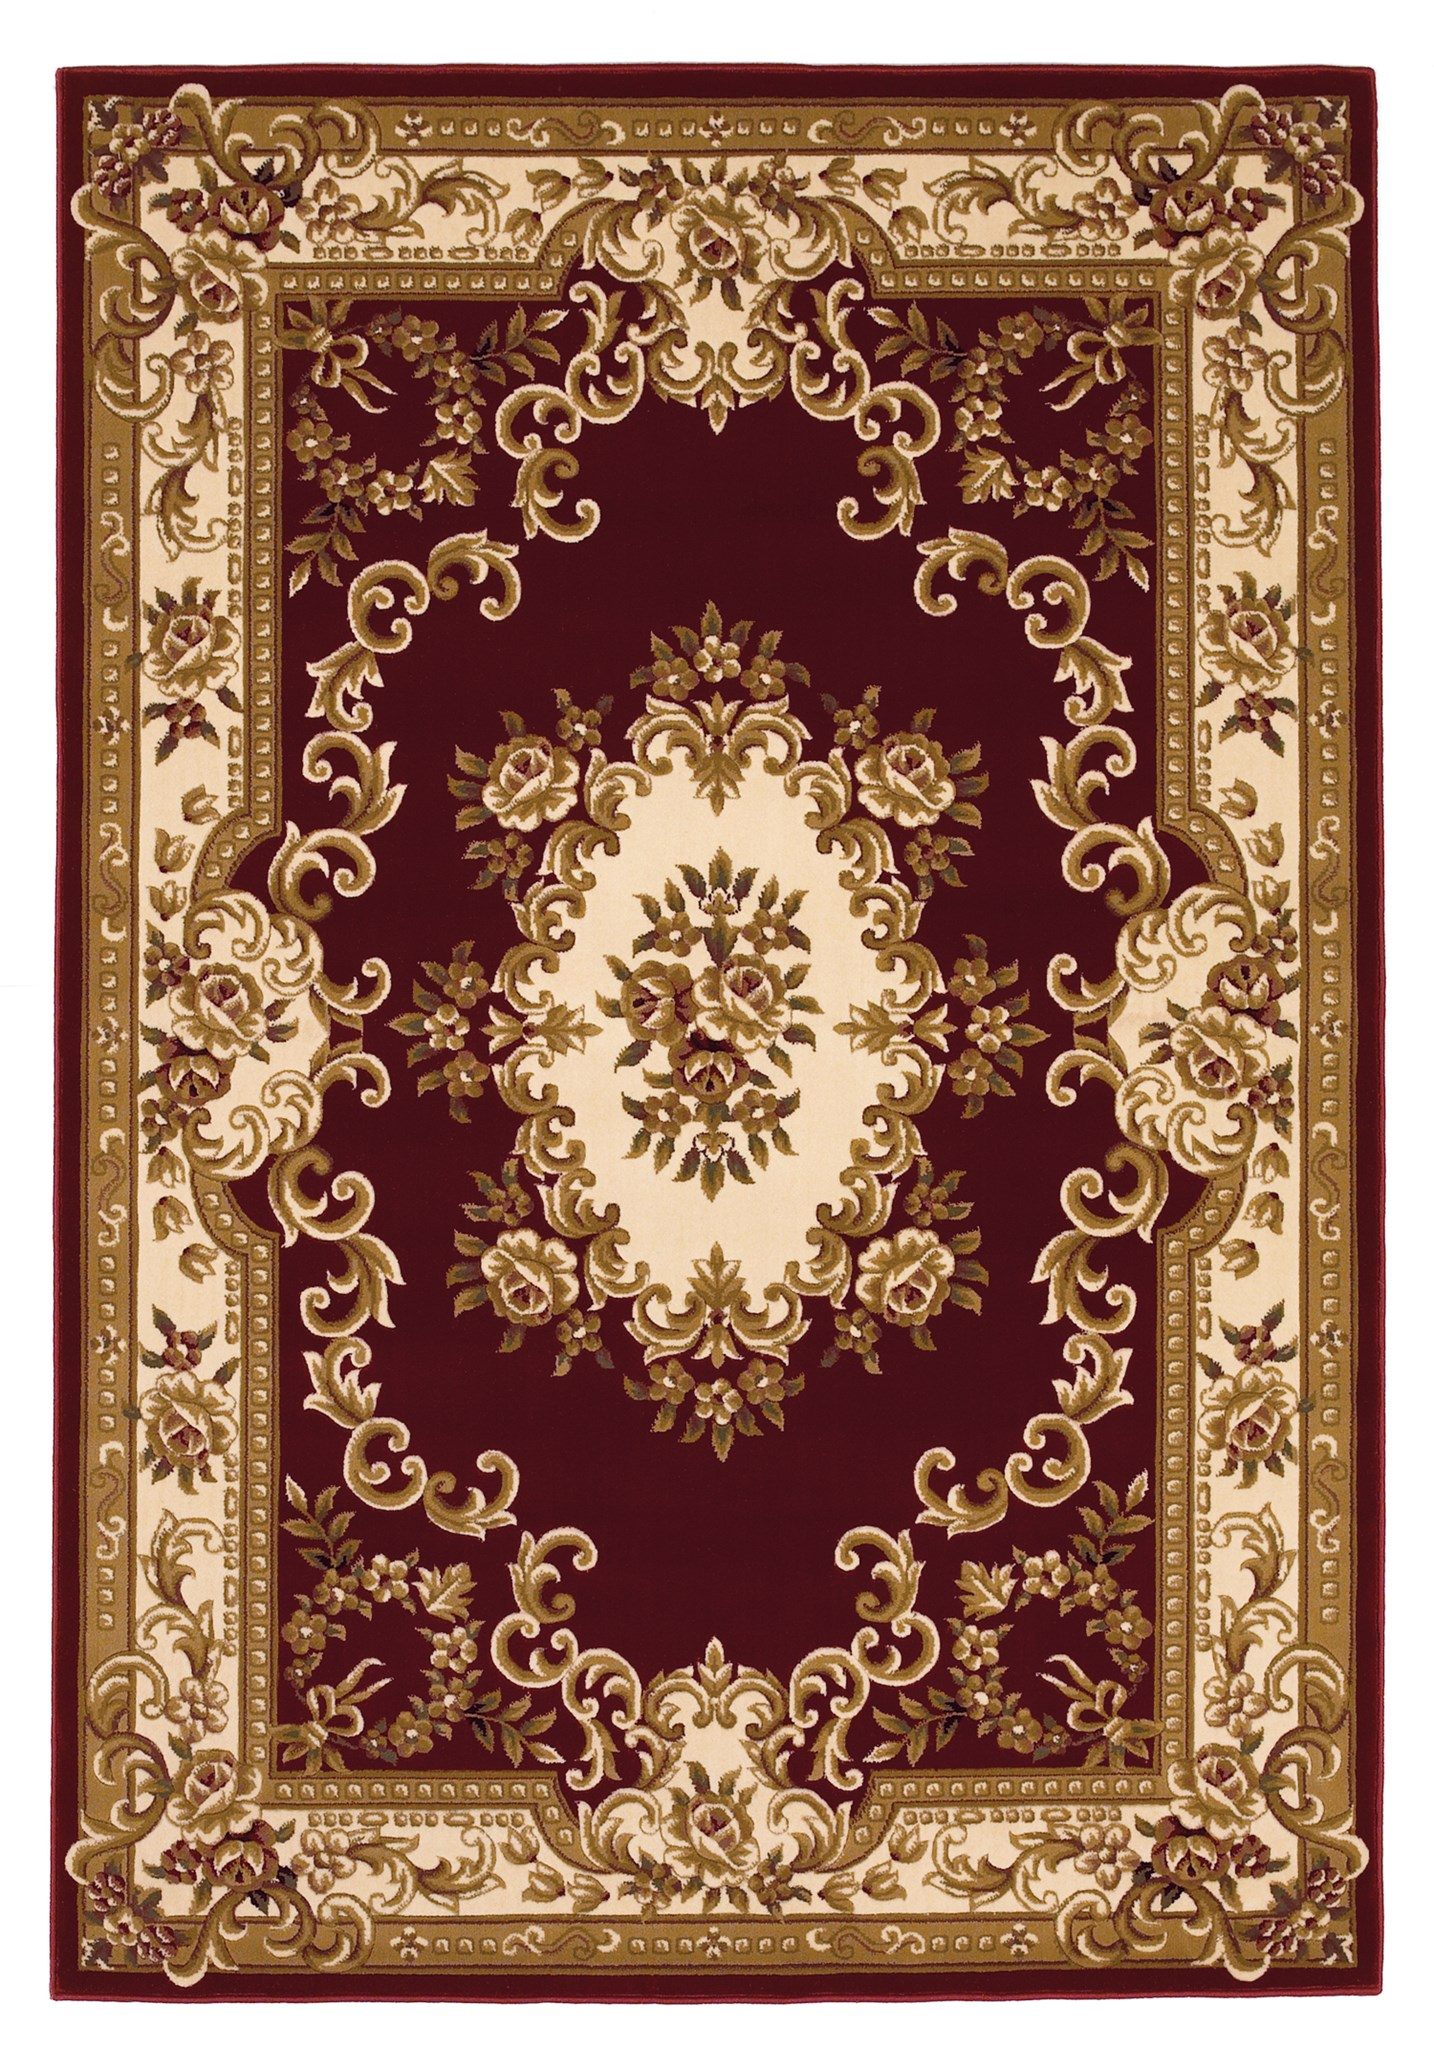 Corinthian 5308 Red/Ivory Aubusson